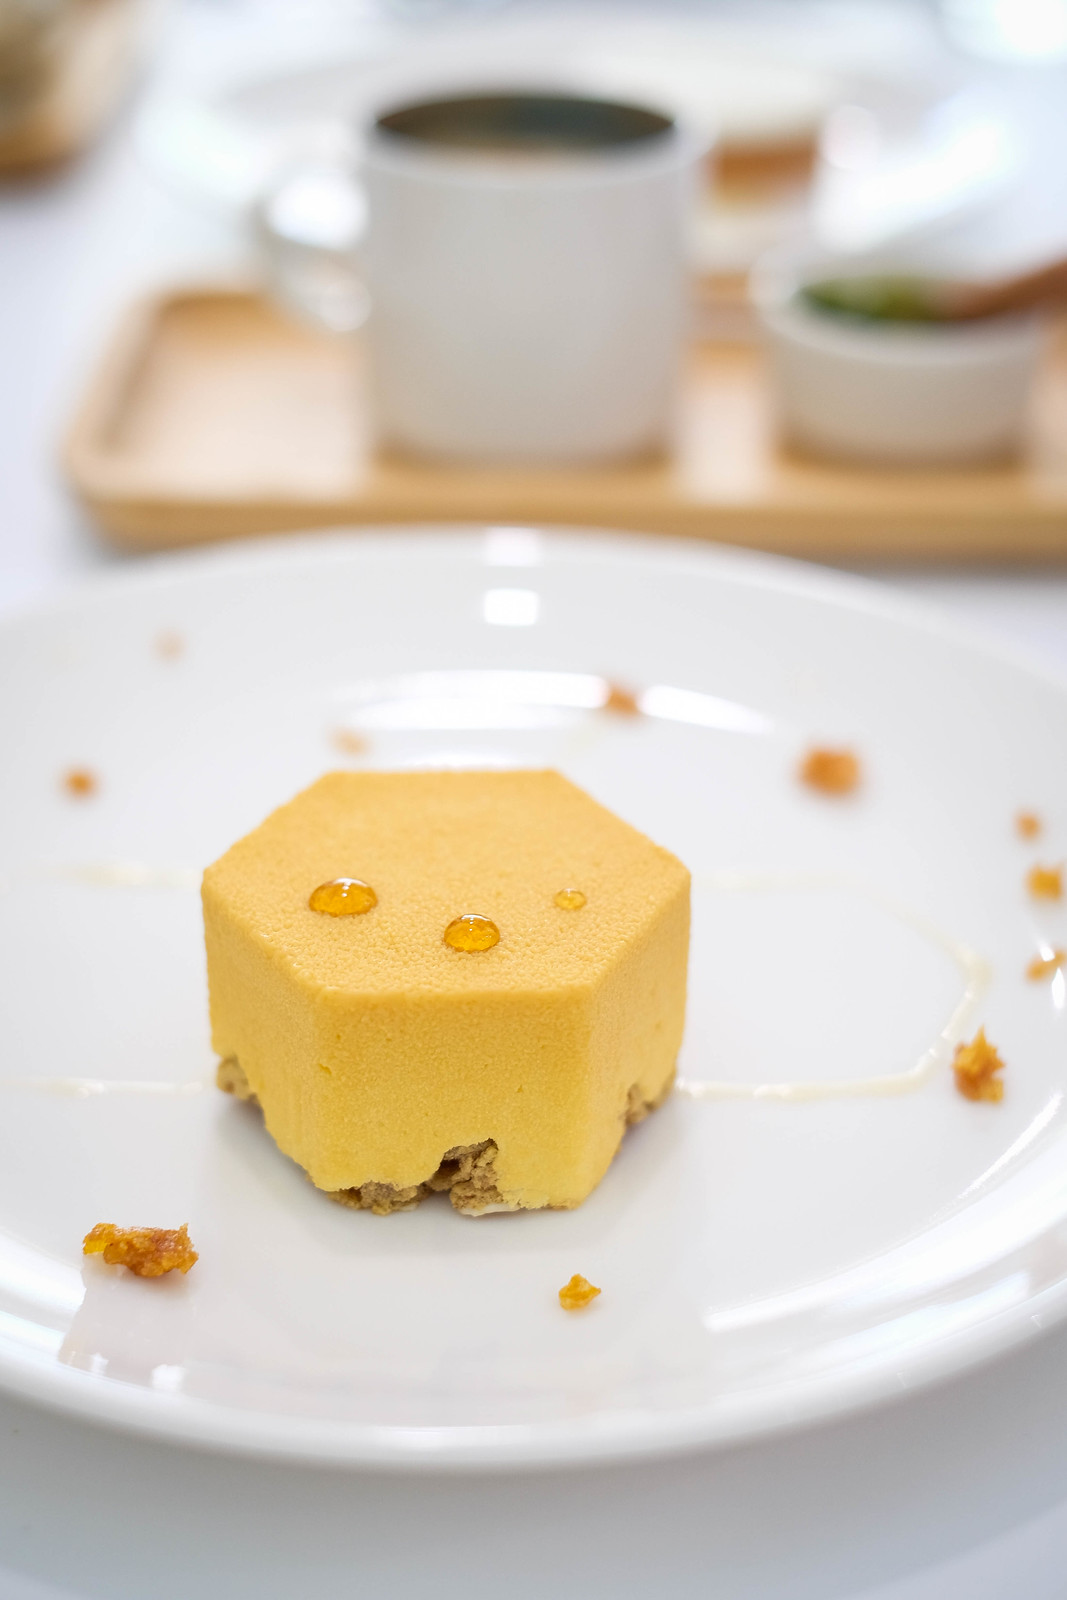 Beehive Shaped Cake from Lee's Confectionery